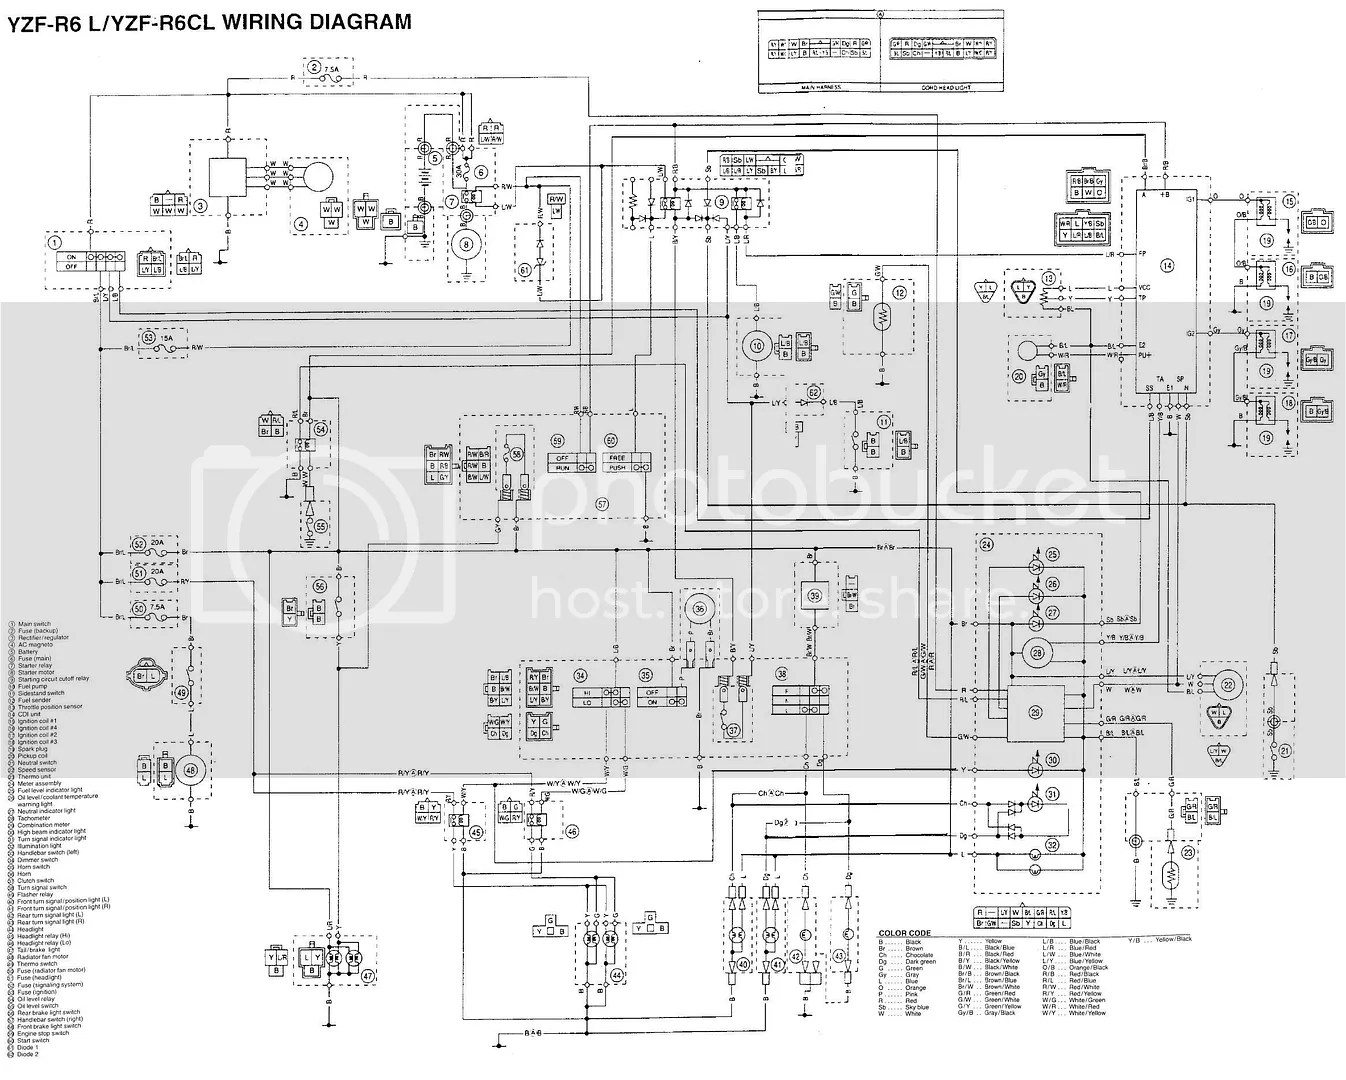 Diagram Download 2002 Yamaha R1 Wiring Diagram Full Hd Fzdbdg Msc Lausitzring De